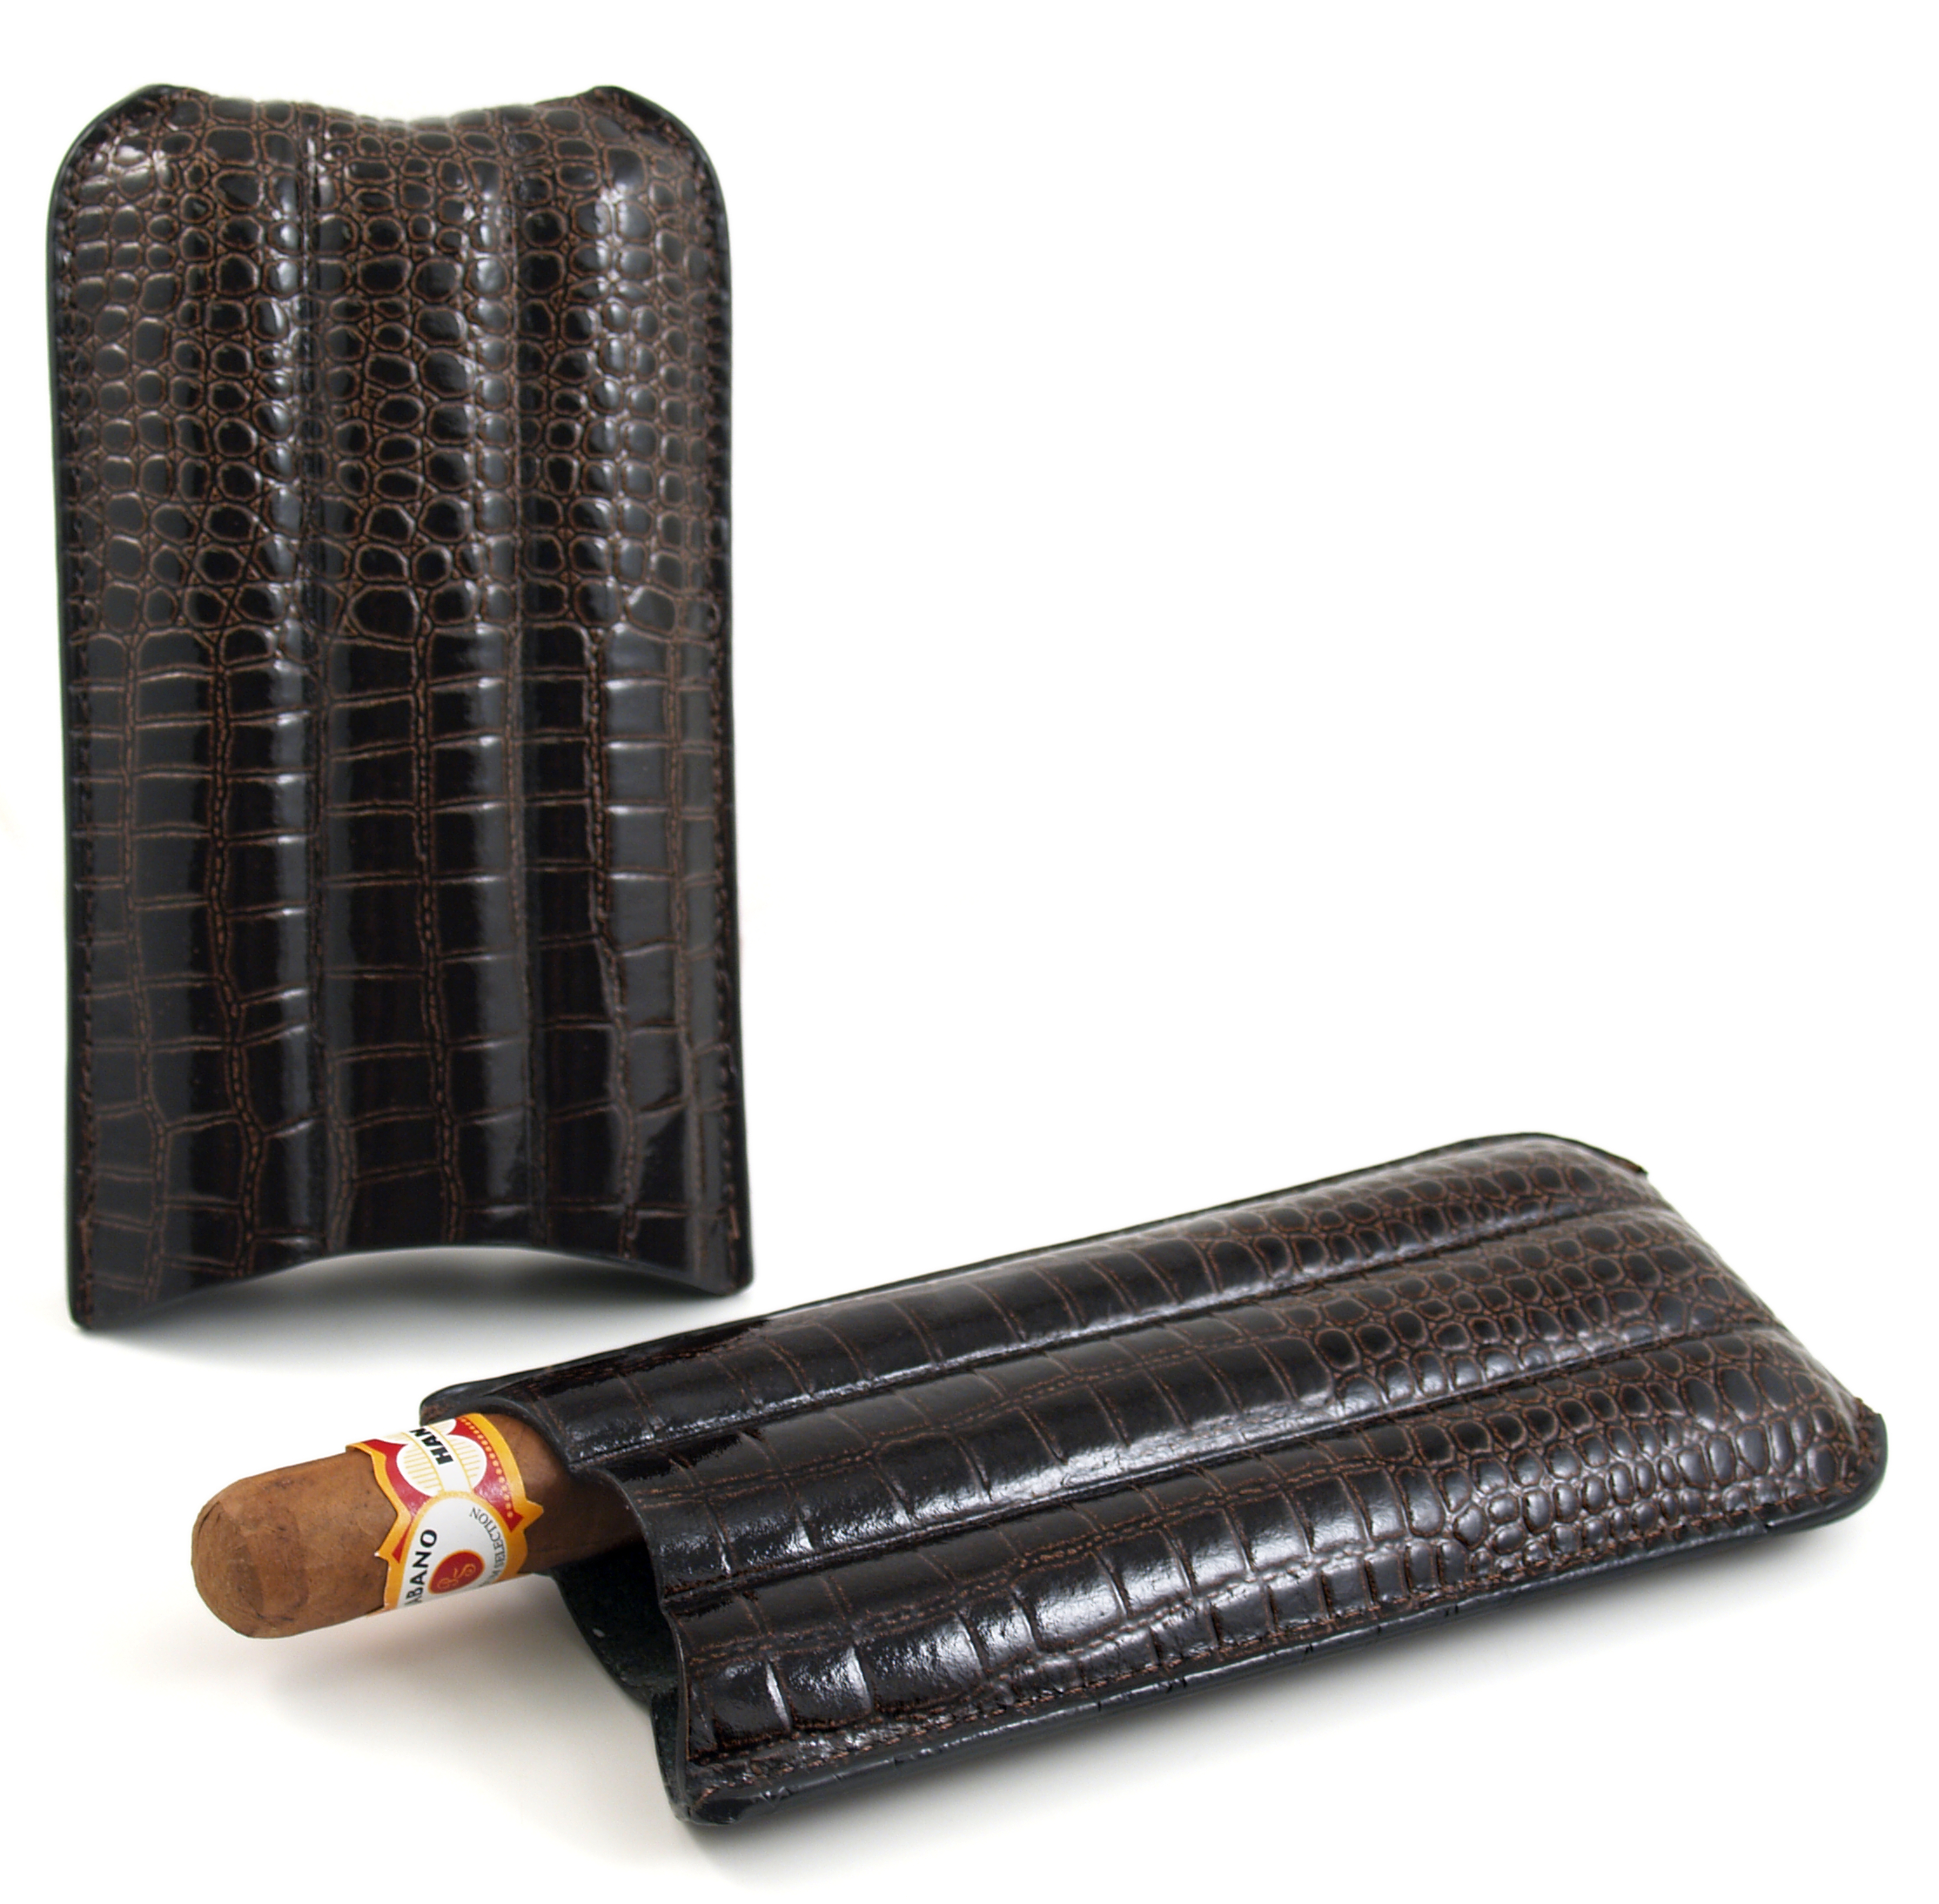 Brown Crocodile 3 Finger Cigar Humidor Case